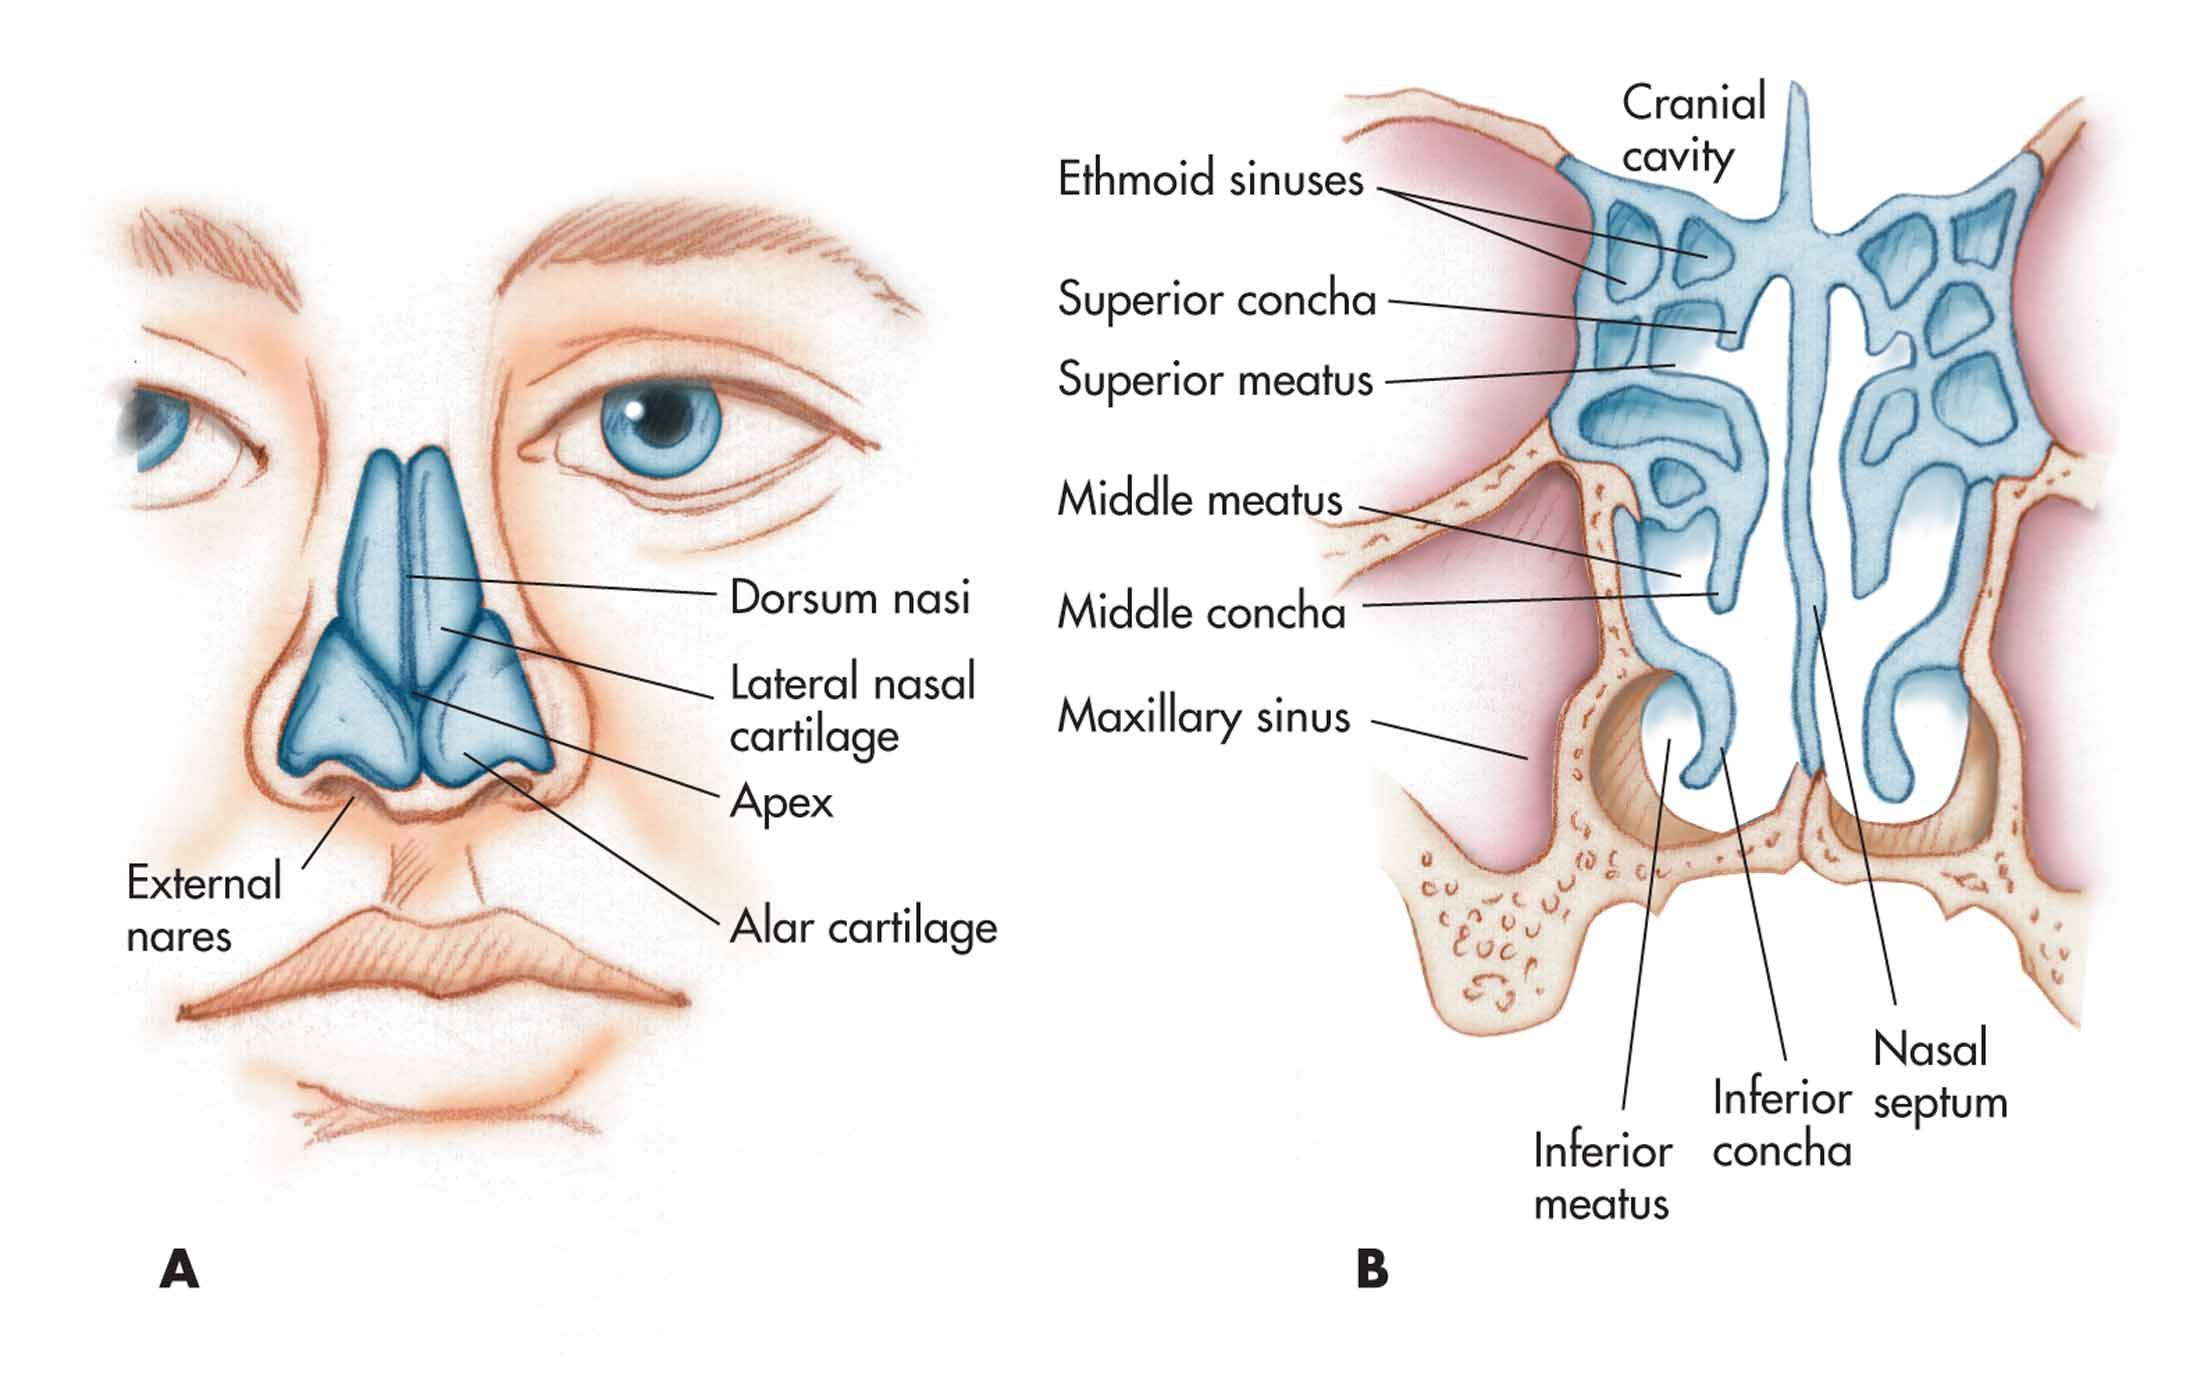 Nose nasal cavity and pharynx a nasal cartilages and external nose nasal cavity and pharynx a nasal cartilages and external structure b meatus and positions of the entrance to the ethmoid and maxillary sinuses pooptronica Images